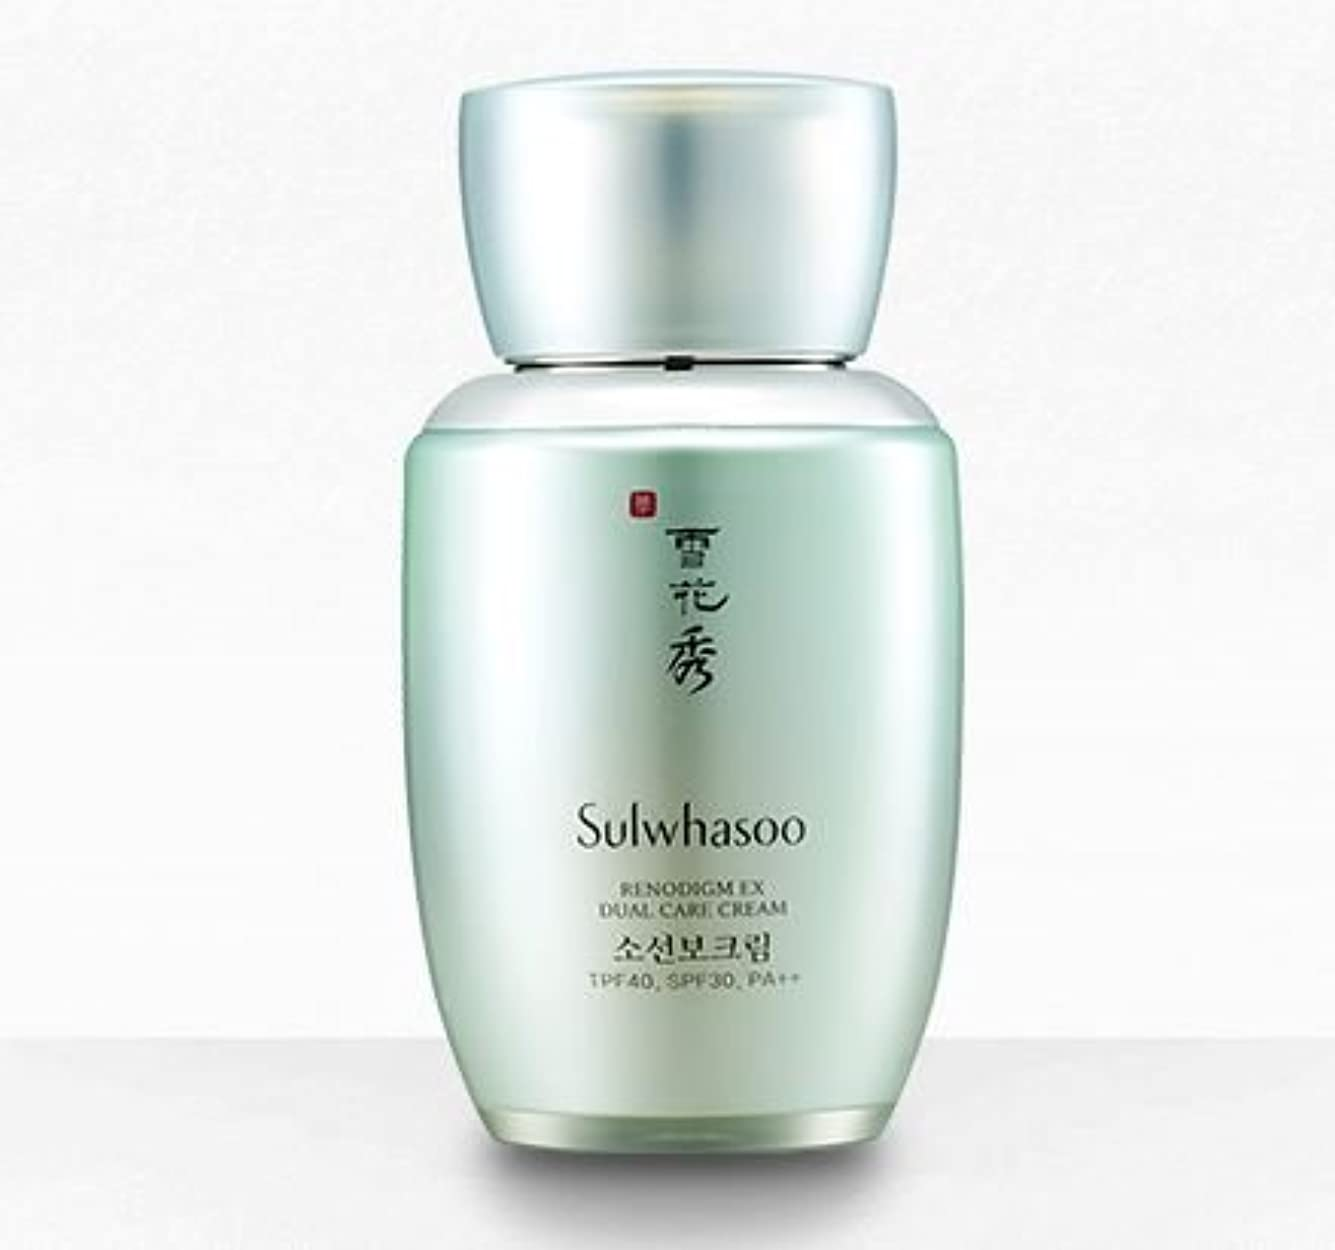 告発ドラマ植物学[Sulwhasoo] Renodigm EX Dual Care Cream 50ml [並行輸入品]